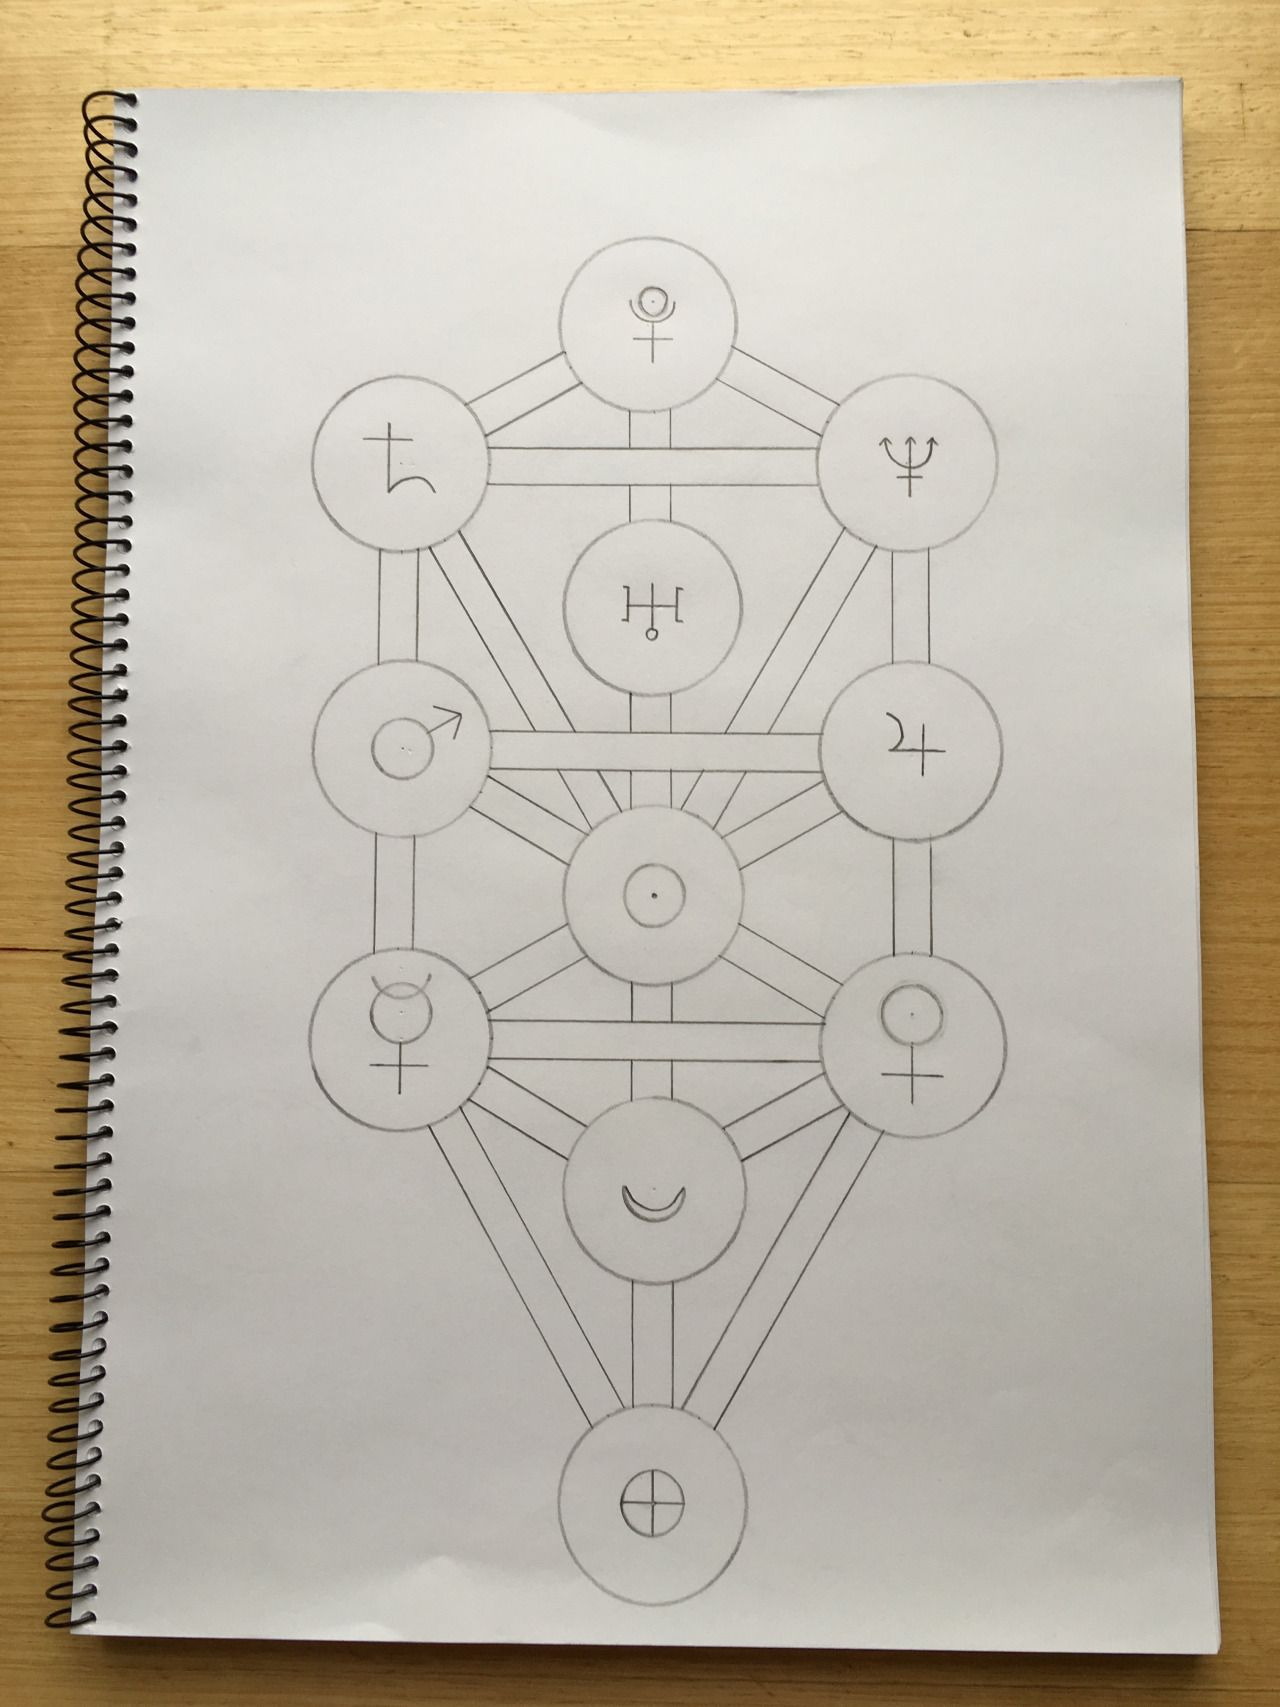 small resolution of kabbalistic tree of life this diagram can be used as a map of whatever system you are working with whether the microcosm yourself or the macrocosm the